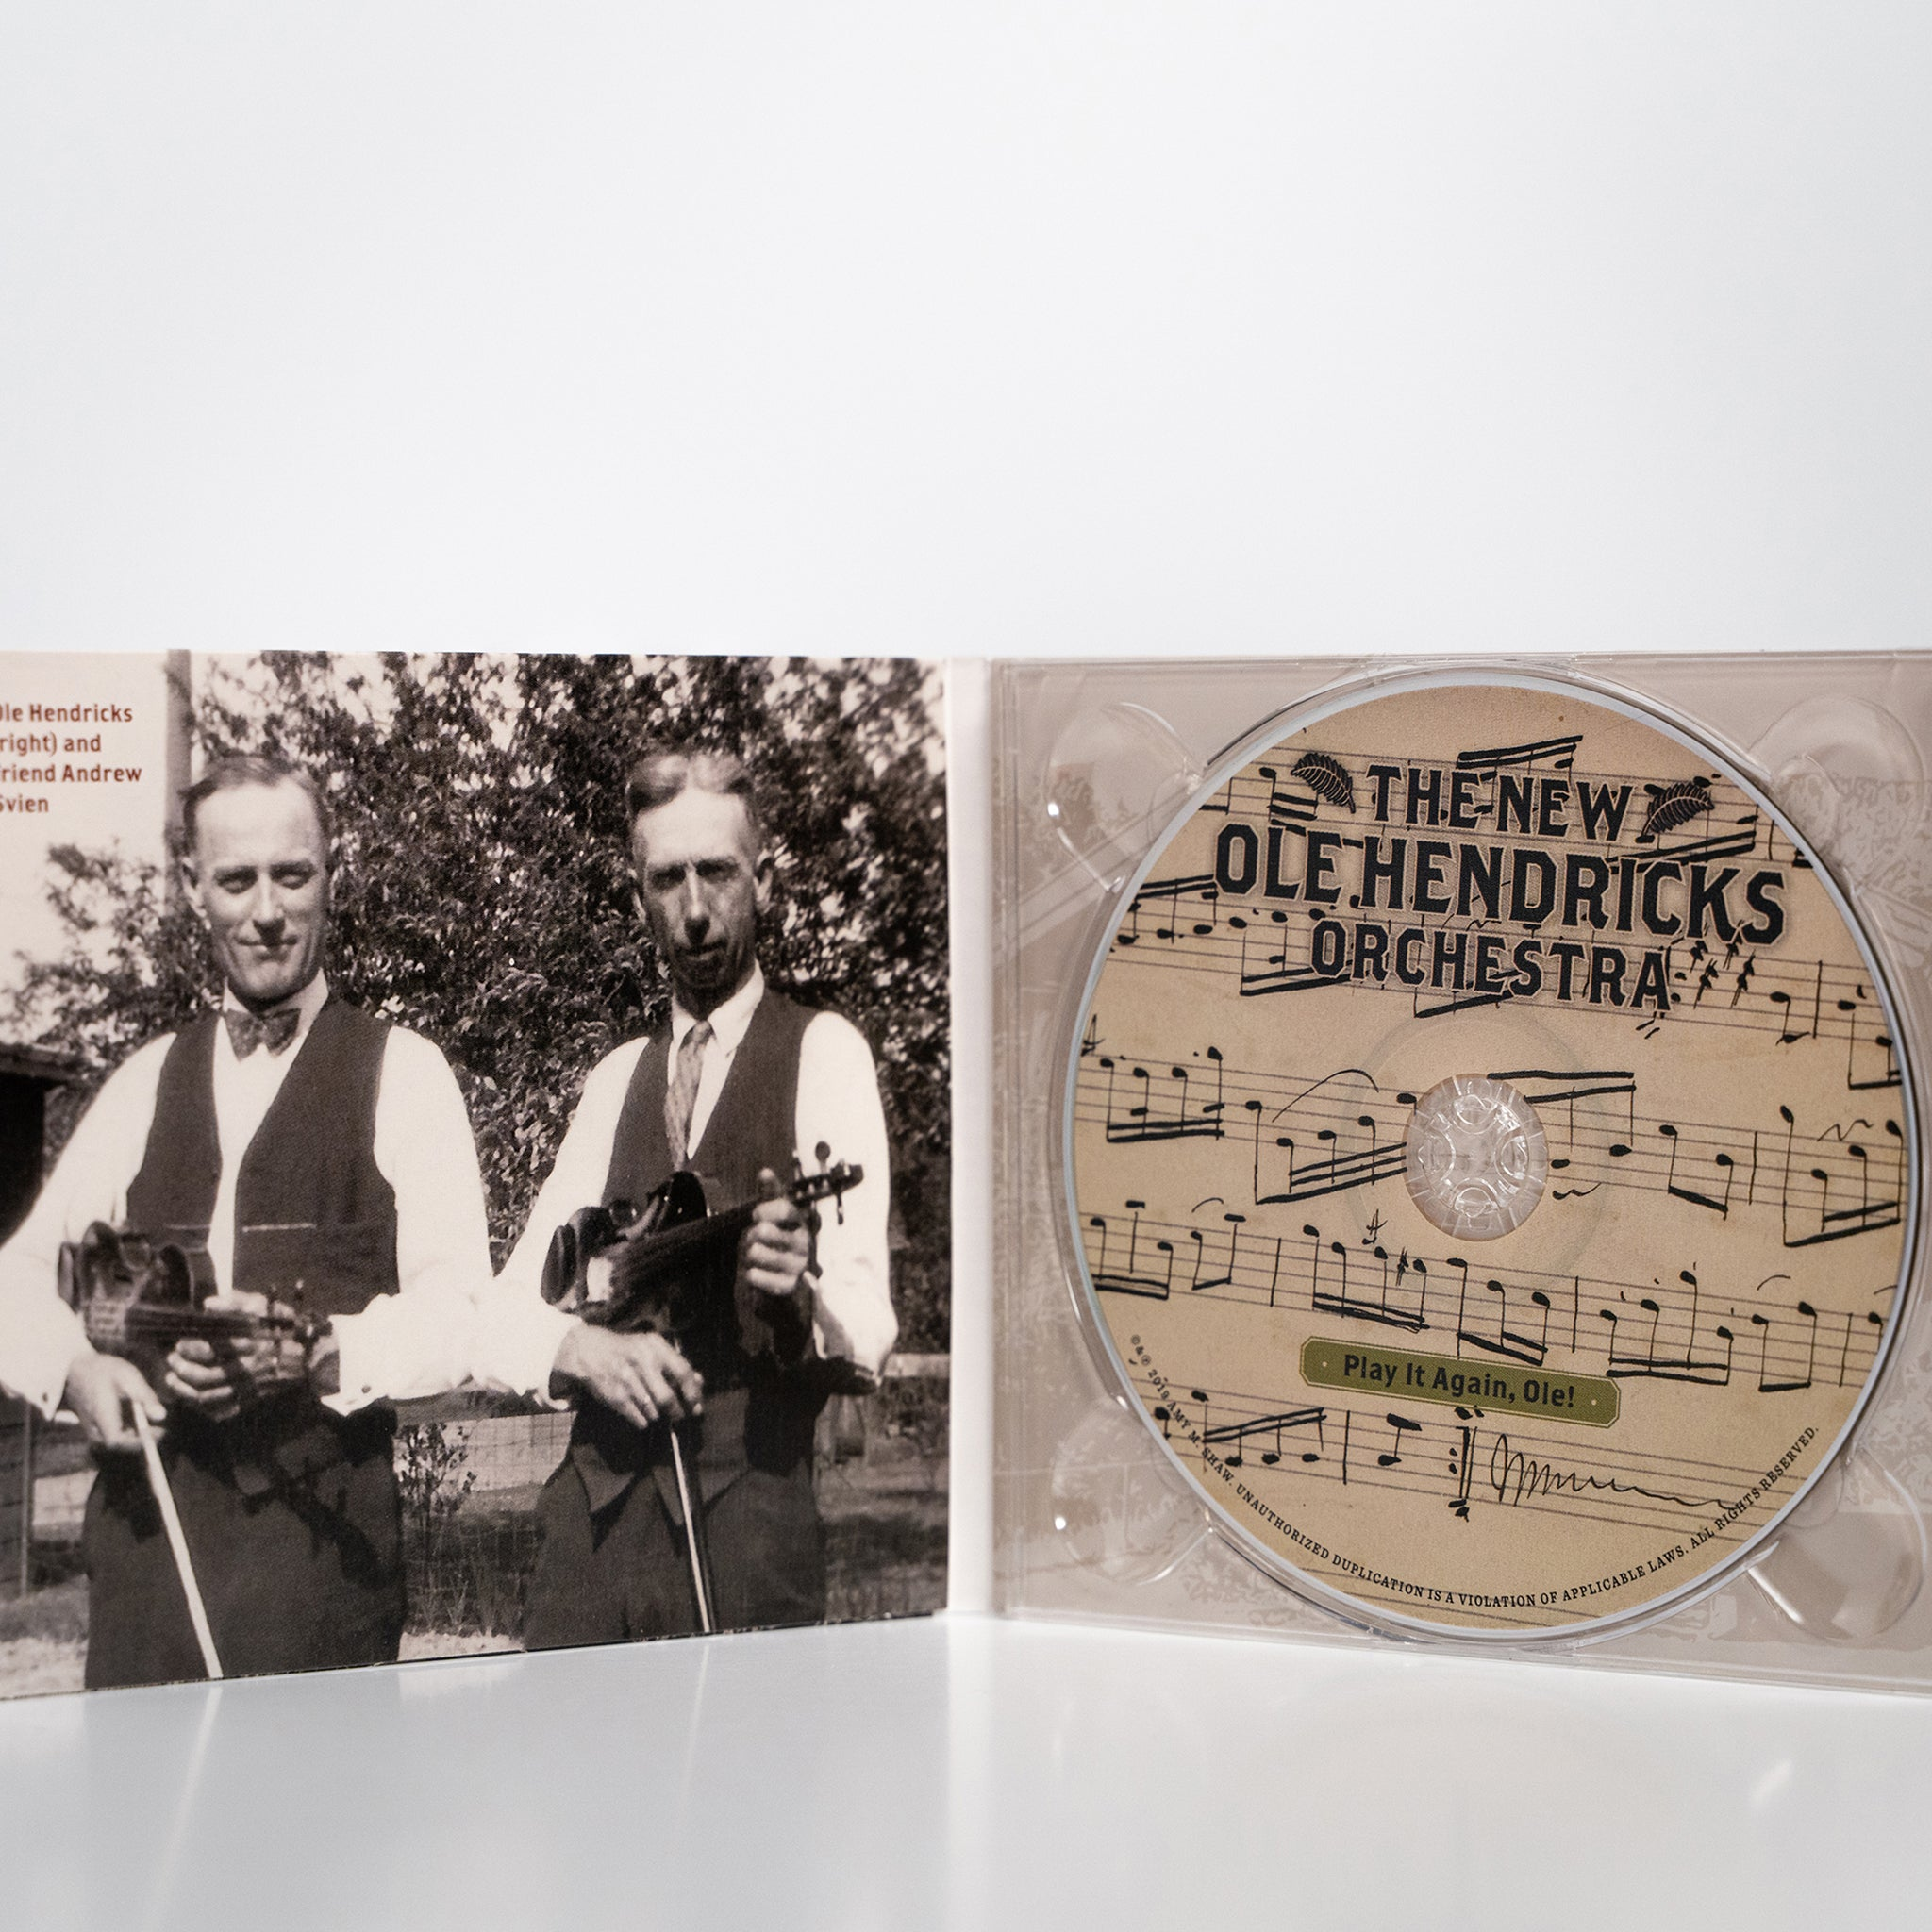 Play It Again, Ole! by The New Ole Hendricks Orchestra CD